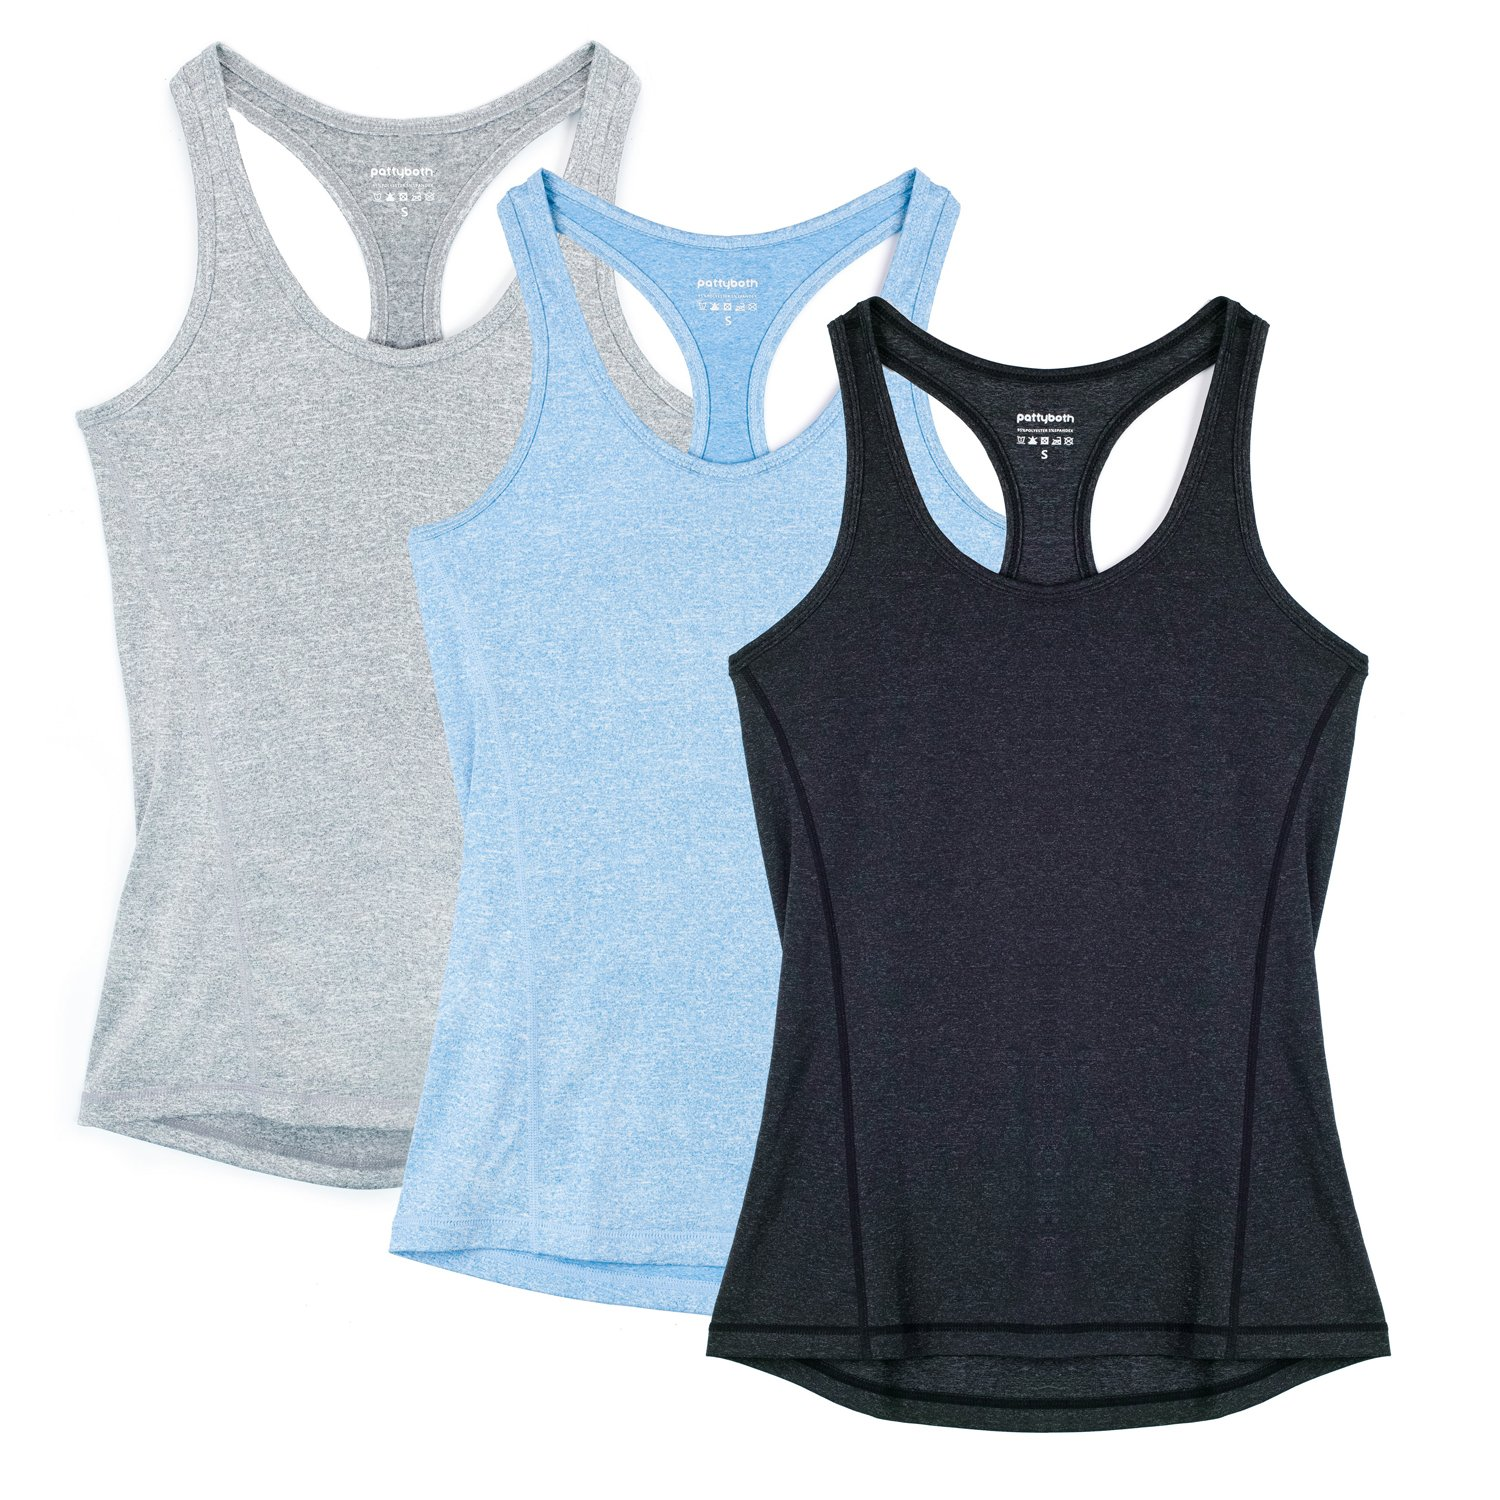 Pattyboth Fitness Vest Activewear Running Workouts Clothes Yoga Racerback Tank Tops for Women Sport Shirts (blackgreyblue, L)